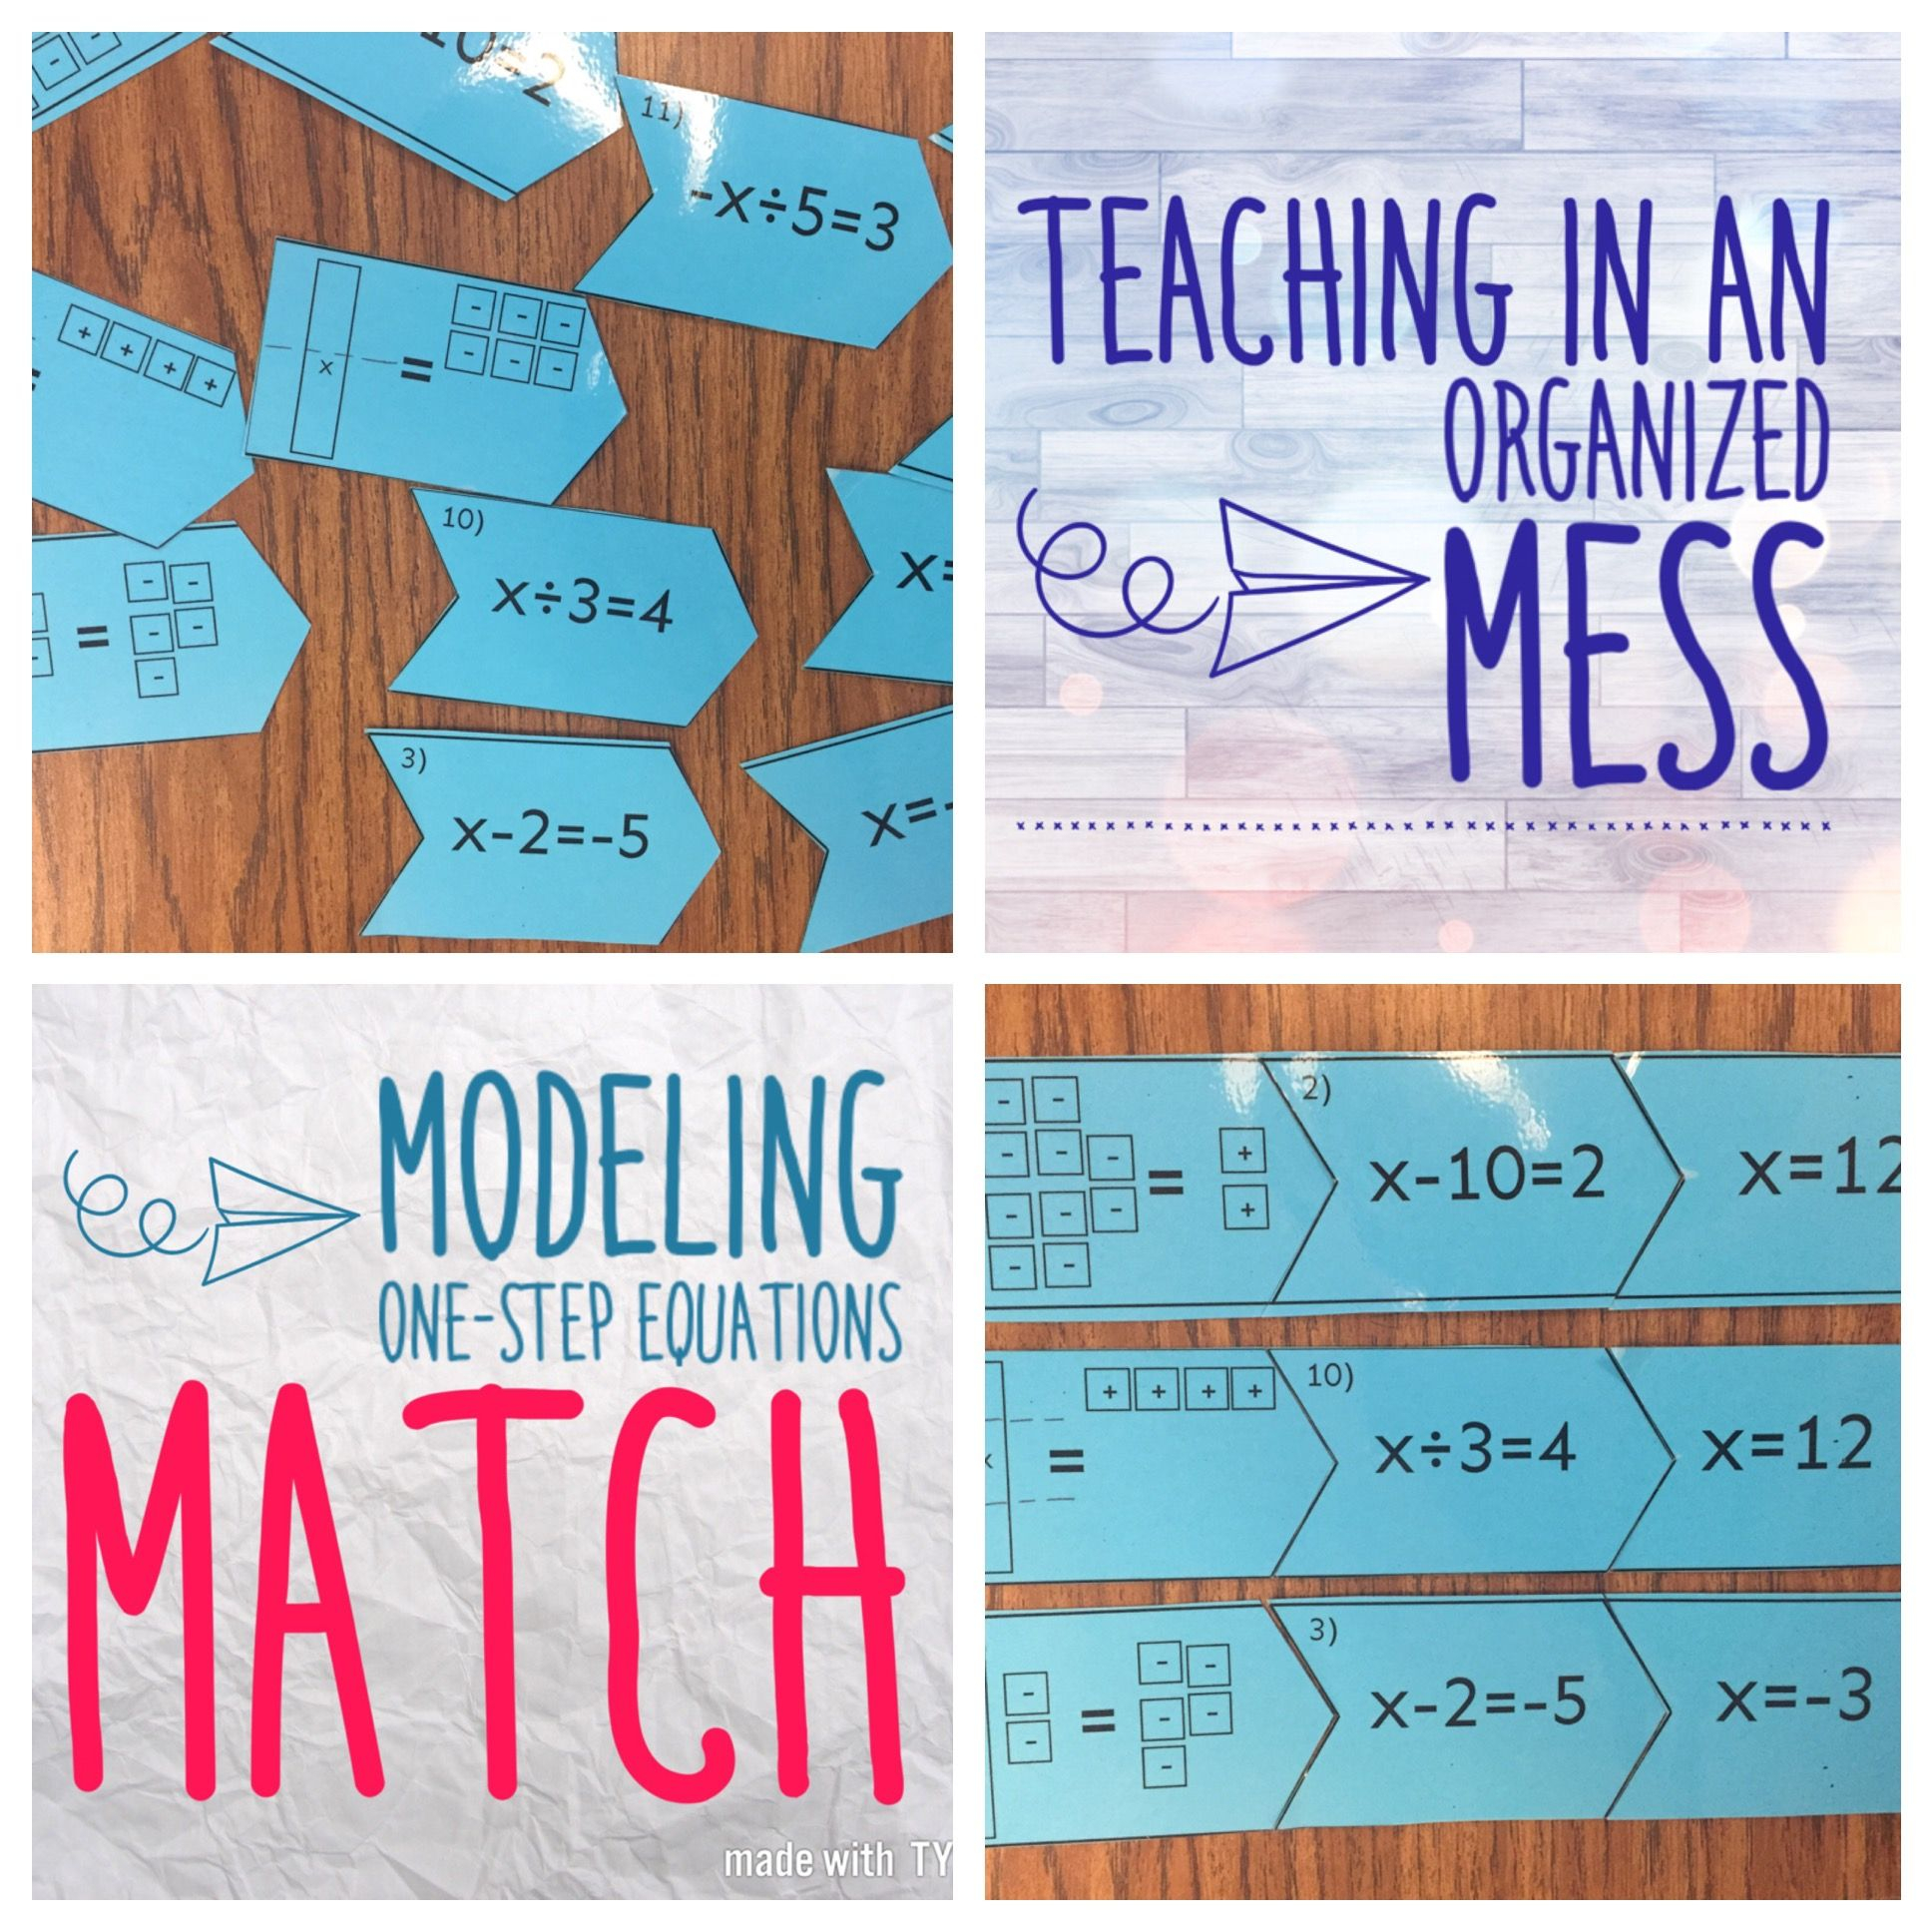 Model One Step Equations With Algebra Tiles   One Step